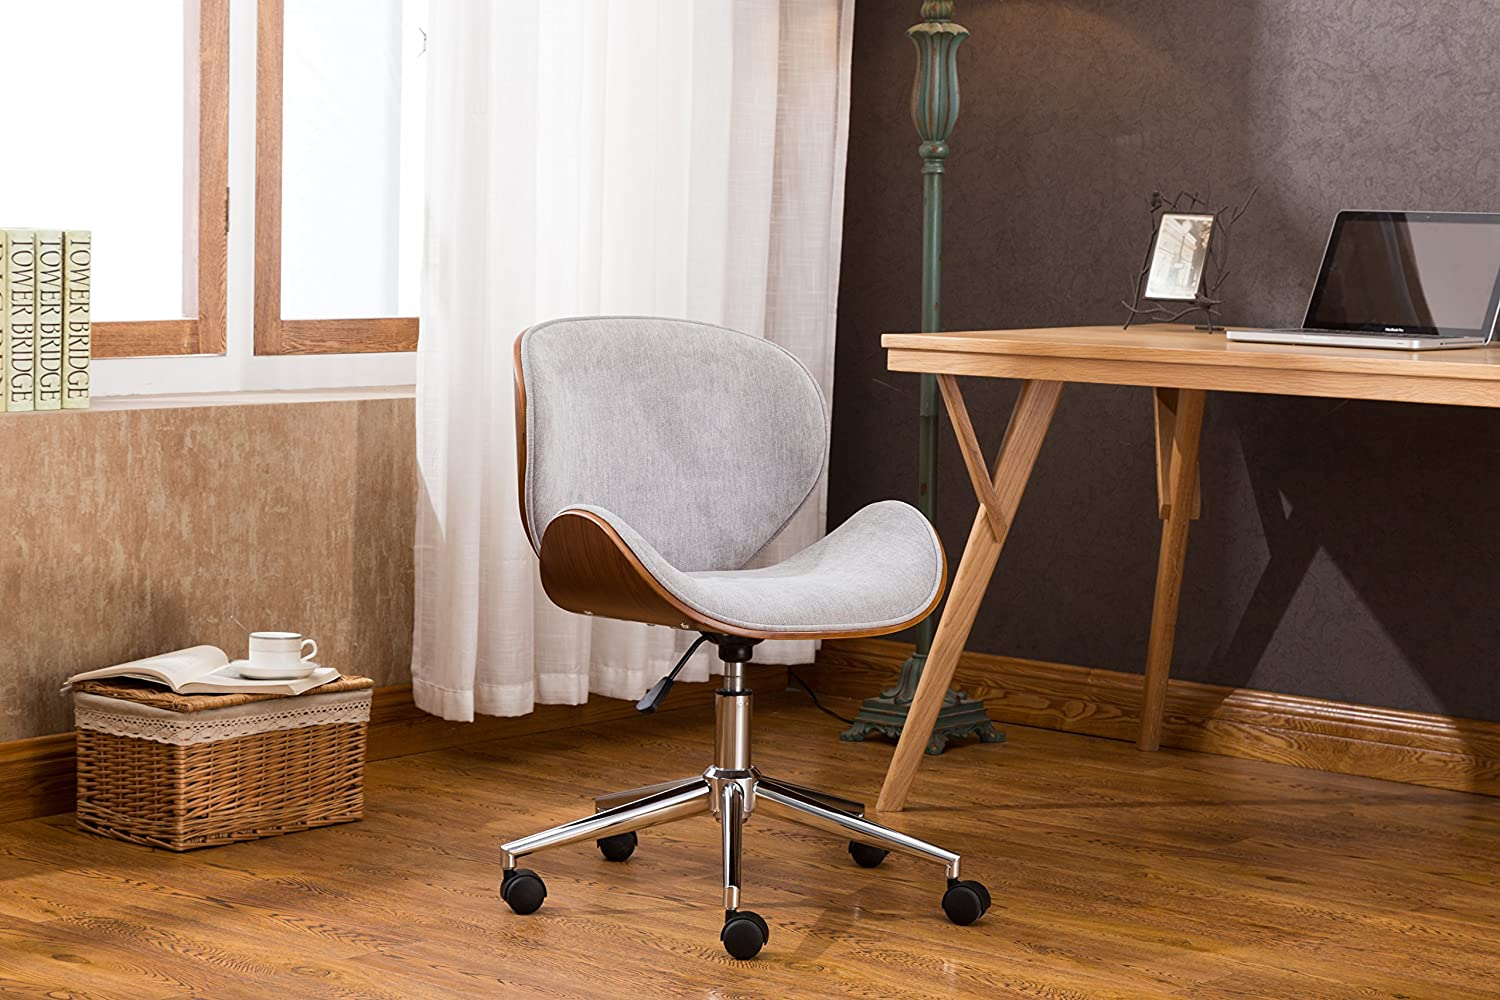 Porthos Home TFC034B GRY Branson Mid-century Style Office Chairs With Fabric Upholstery, Adjustable Height, 360° Swivel And Stainless Steel Legs, Gray